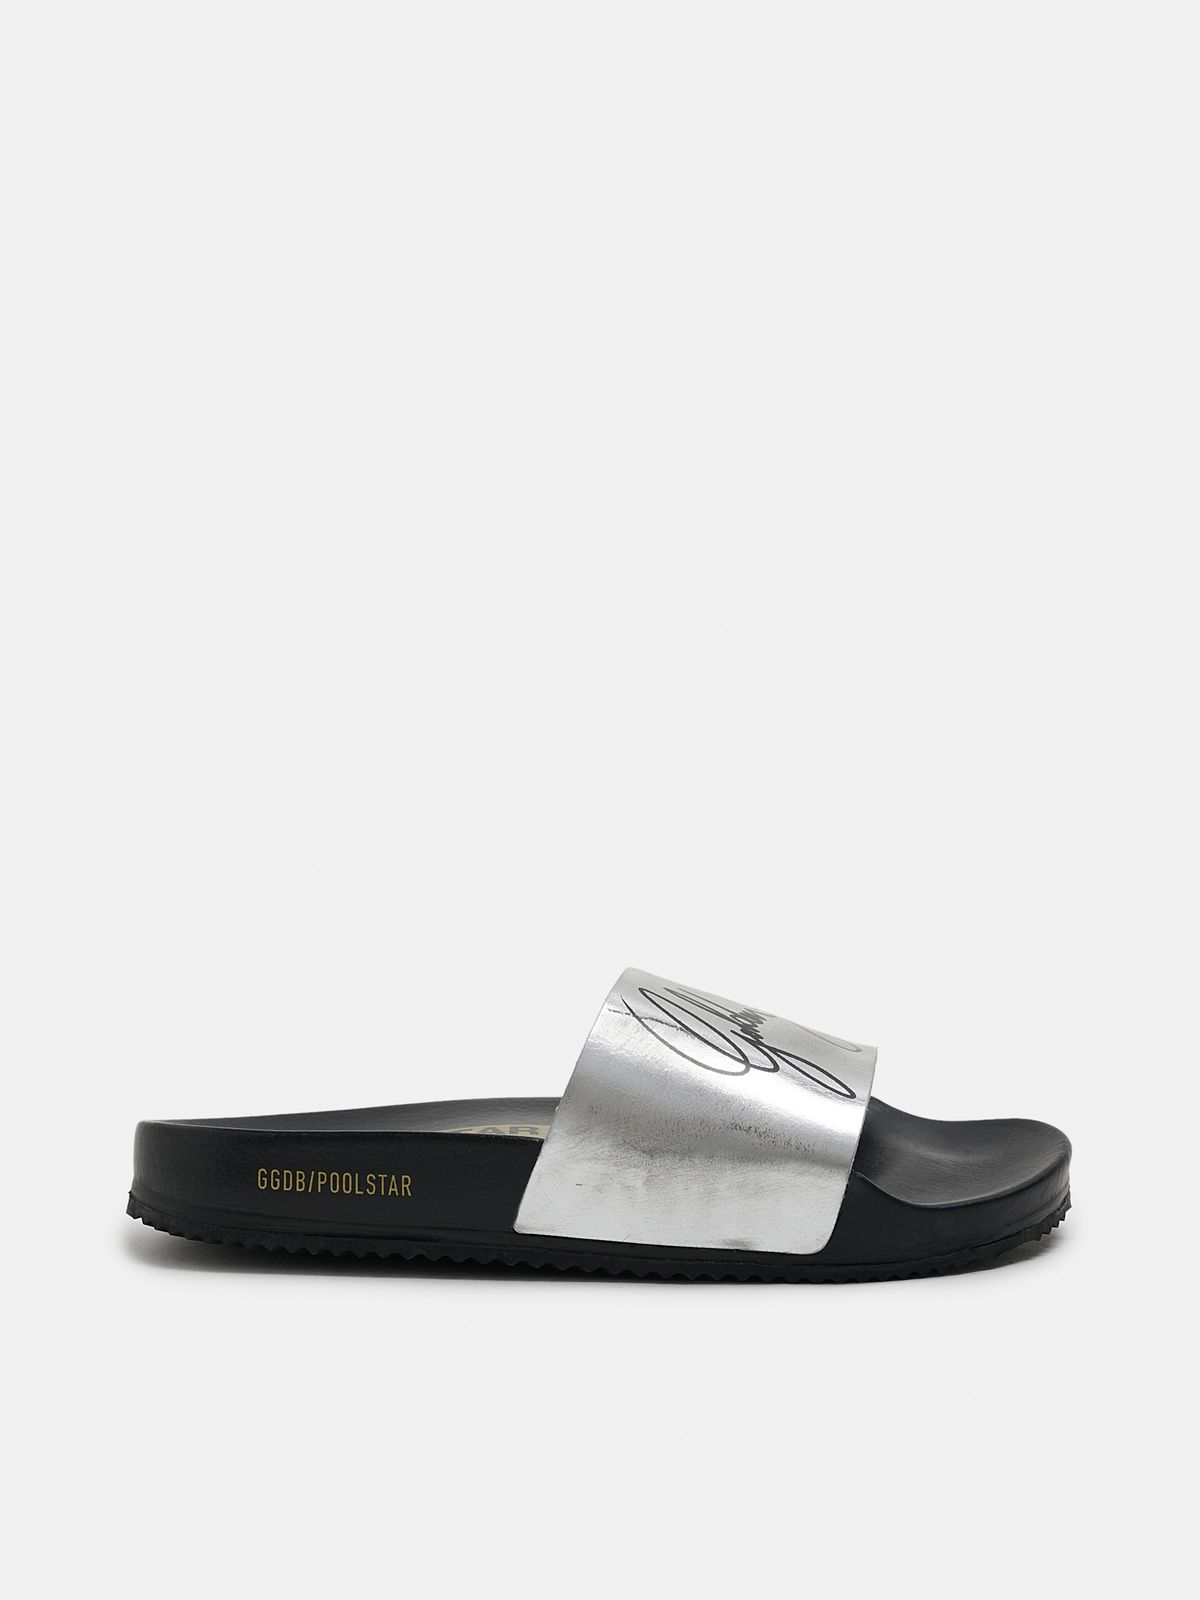 Golden Goose - Women's black Poolstars with silver strap in